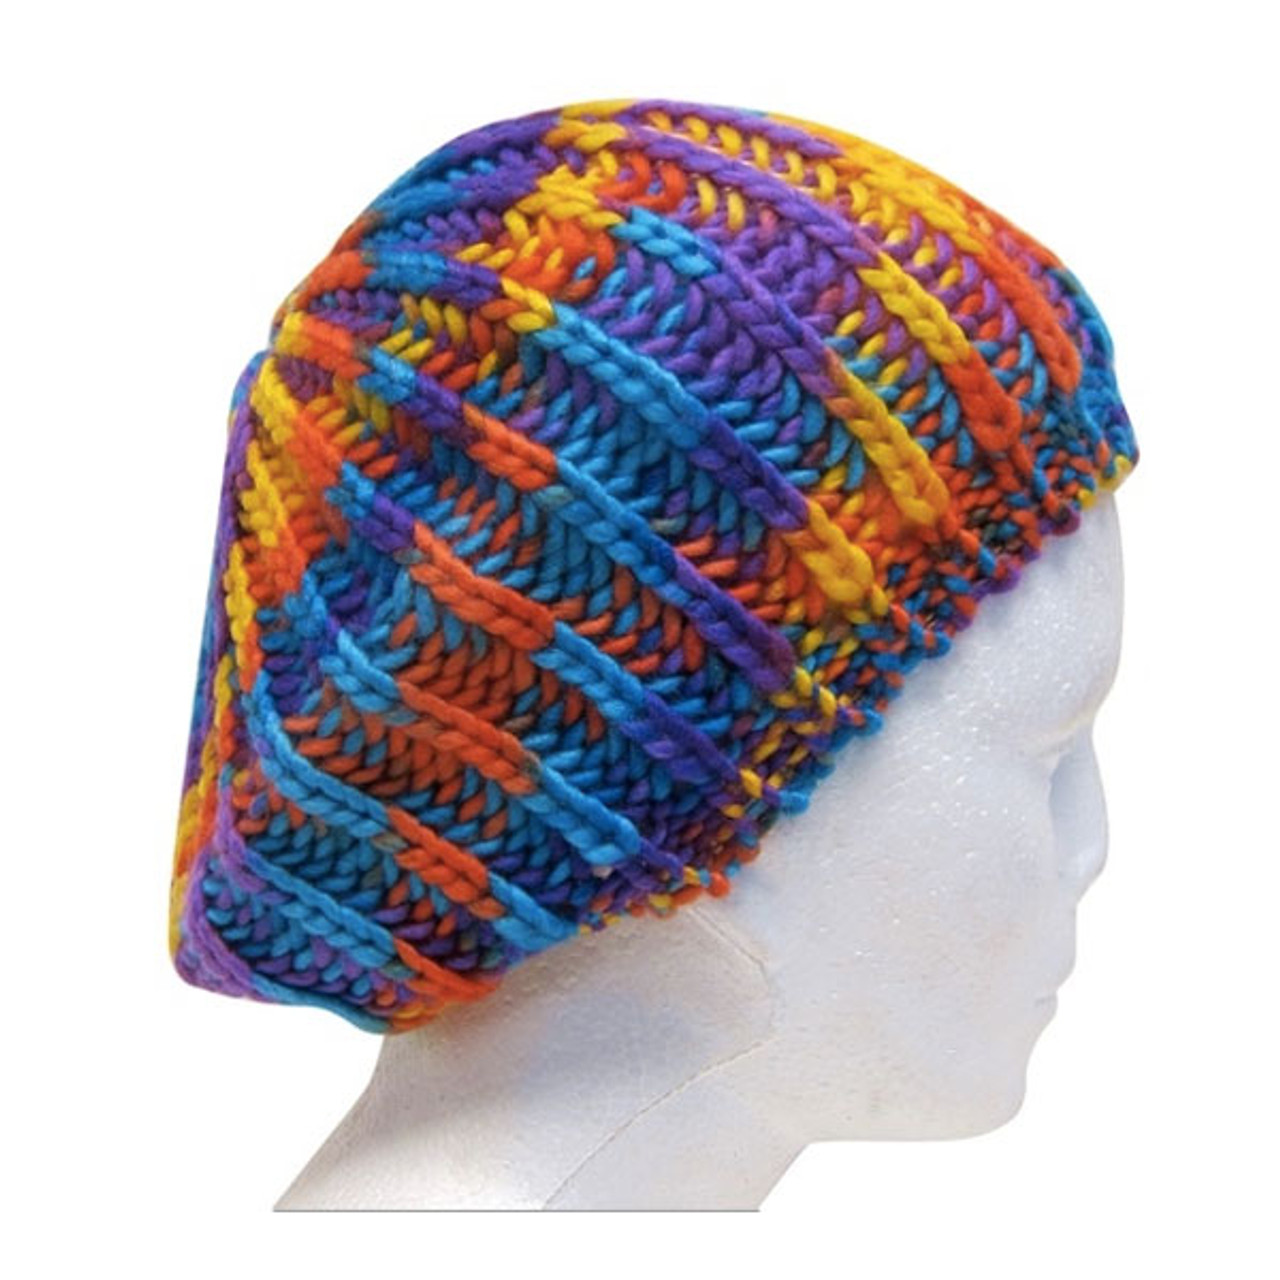 ab591db68 Downtown Style - Space Dyed Knit Beret